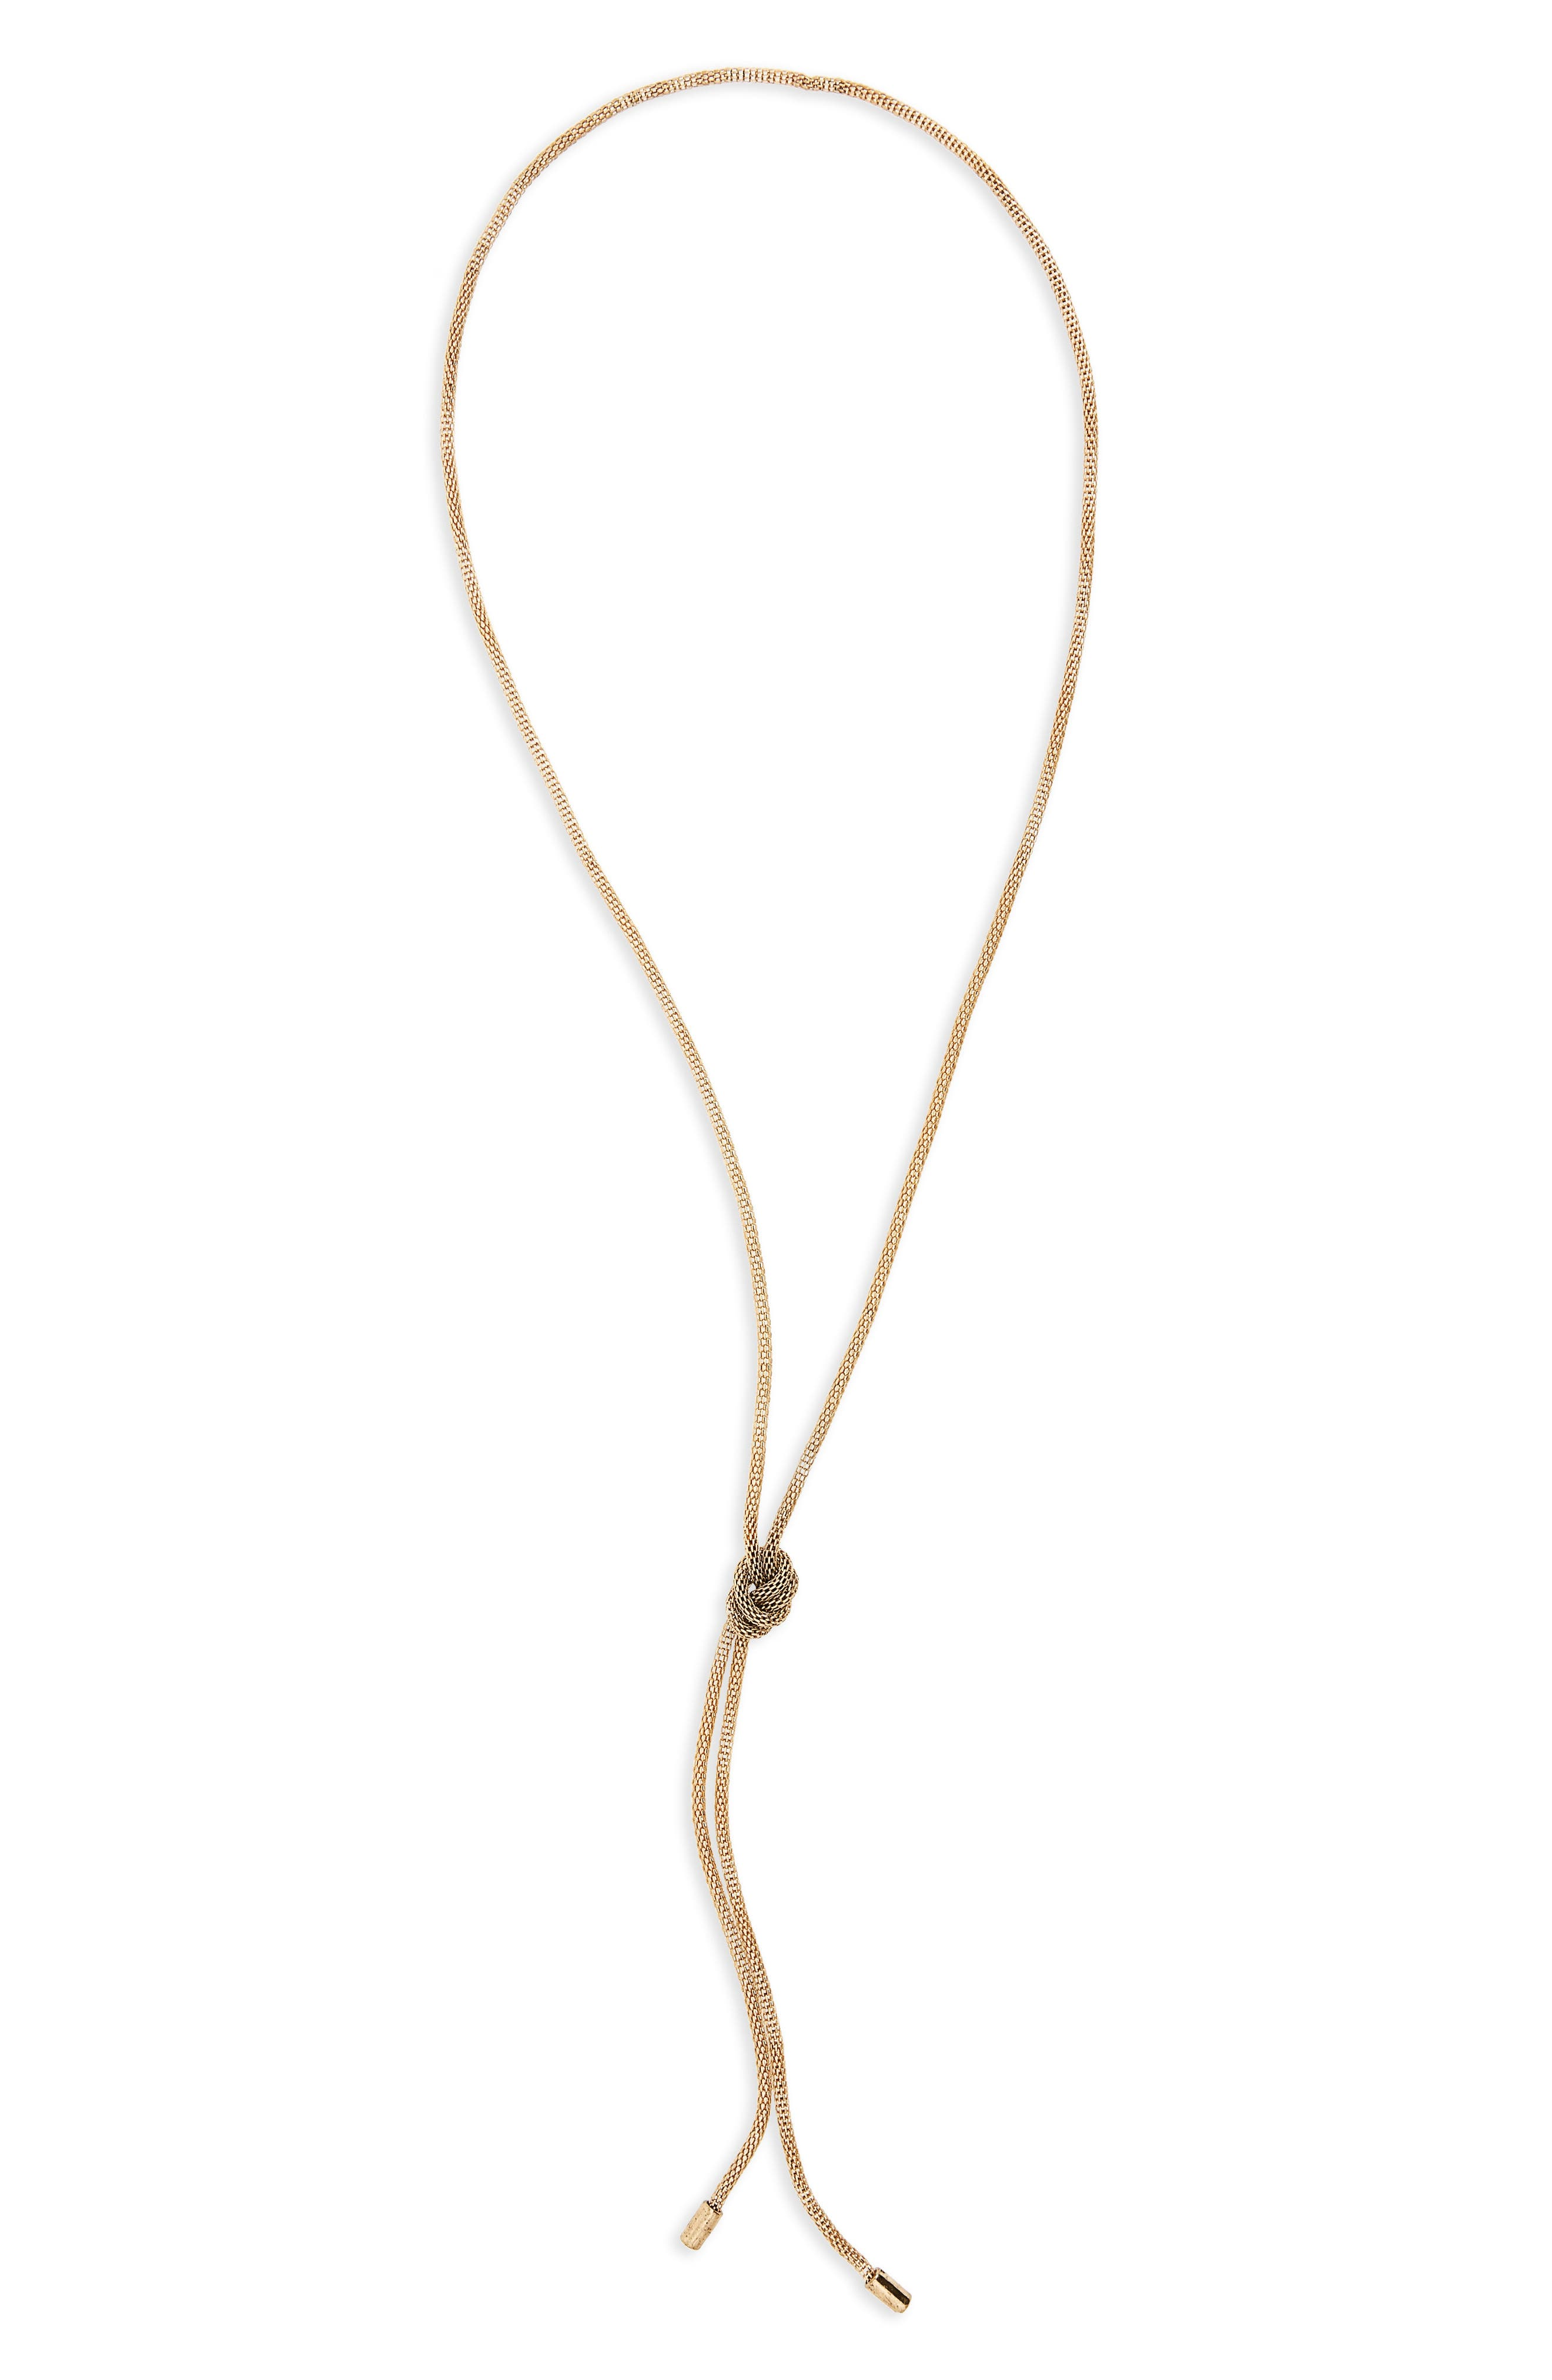 Main Image - BP. Knotted Rope Chain Necklace